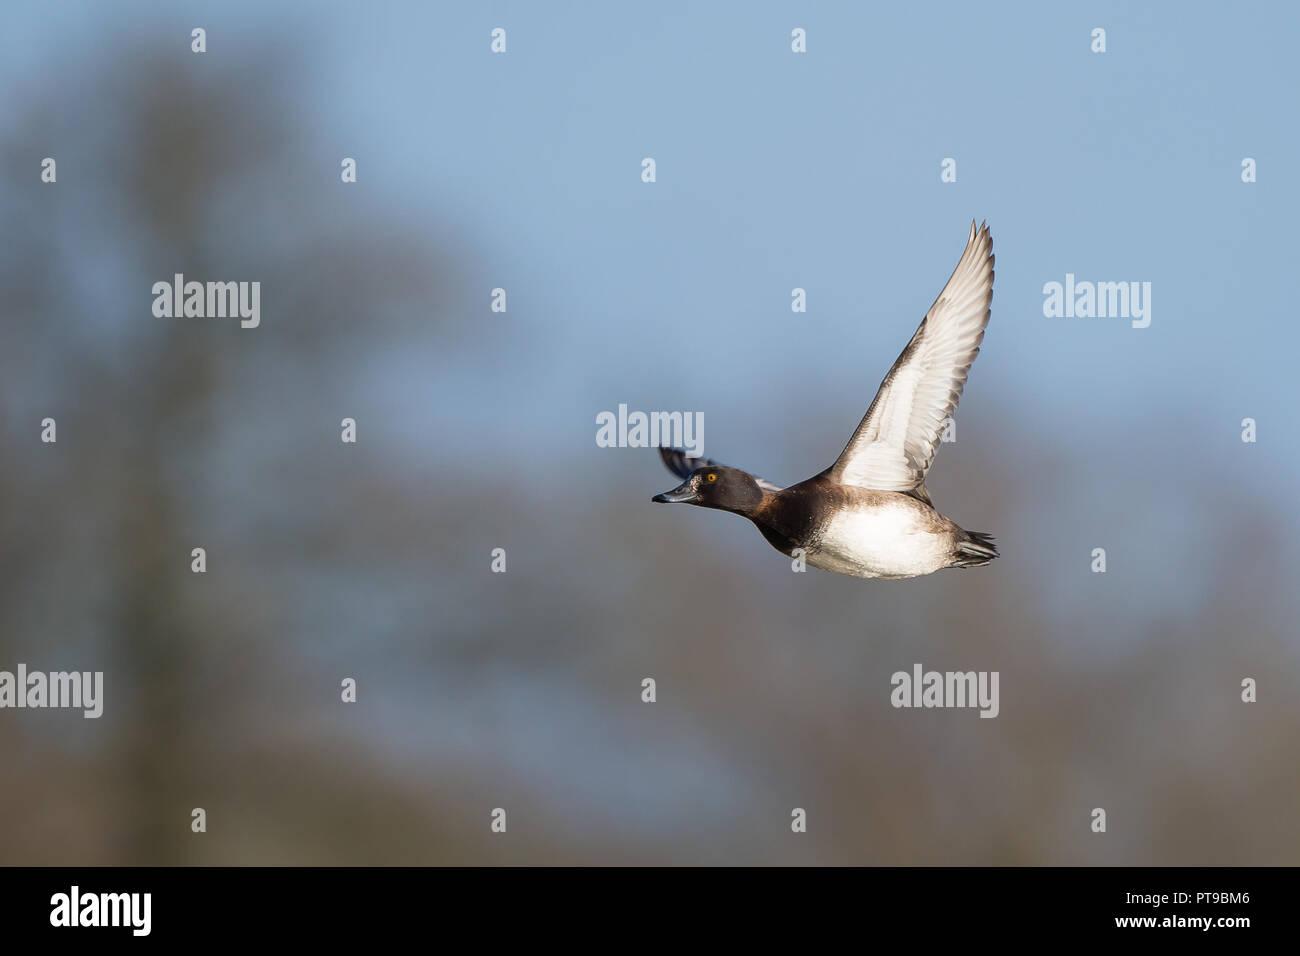 Landscape capture of single, wild tufted duck in flight, wings raised in upwards stroke. Adult female tufted duck in midair, natural outdoors setting. - Stock Image